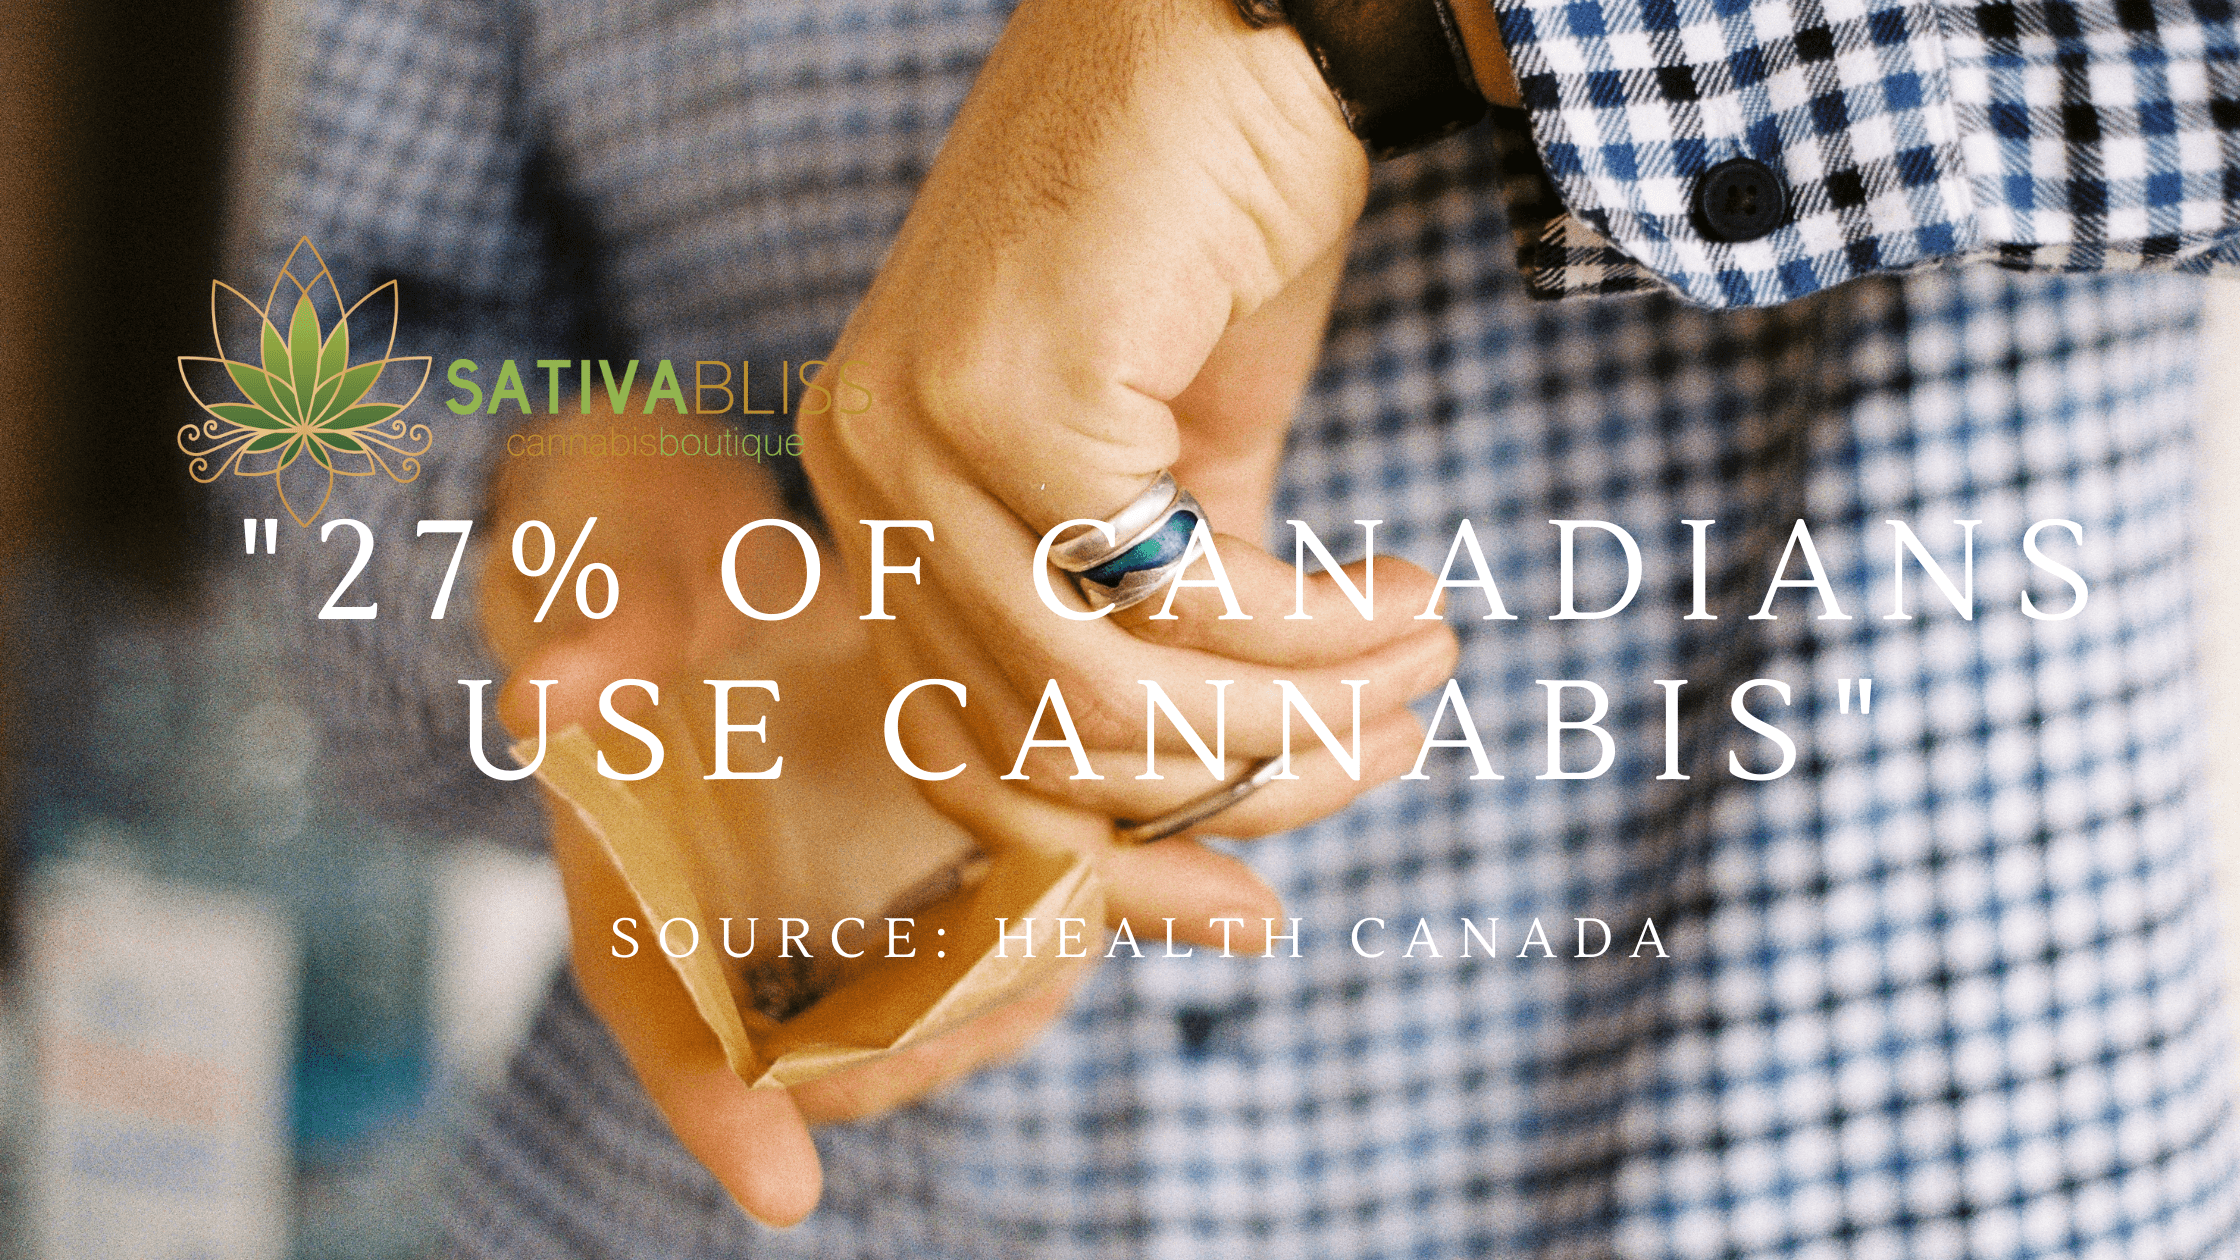 Sativa Bliss Improves Product Selection and Services Using Survey Results on Canadians' Use of Cannabis as Released by Health Canada